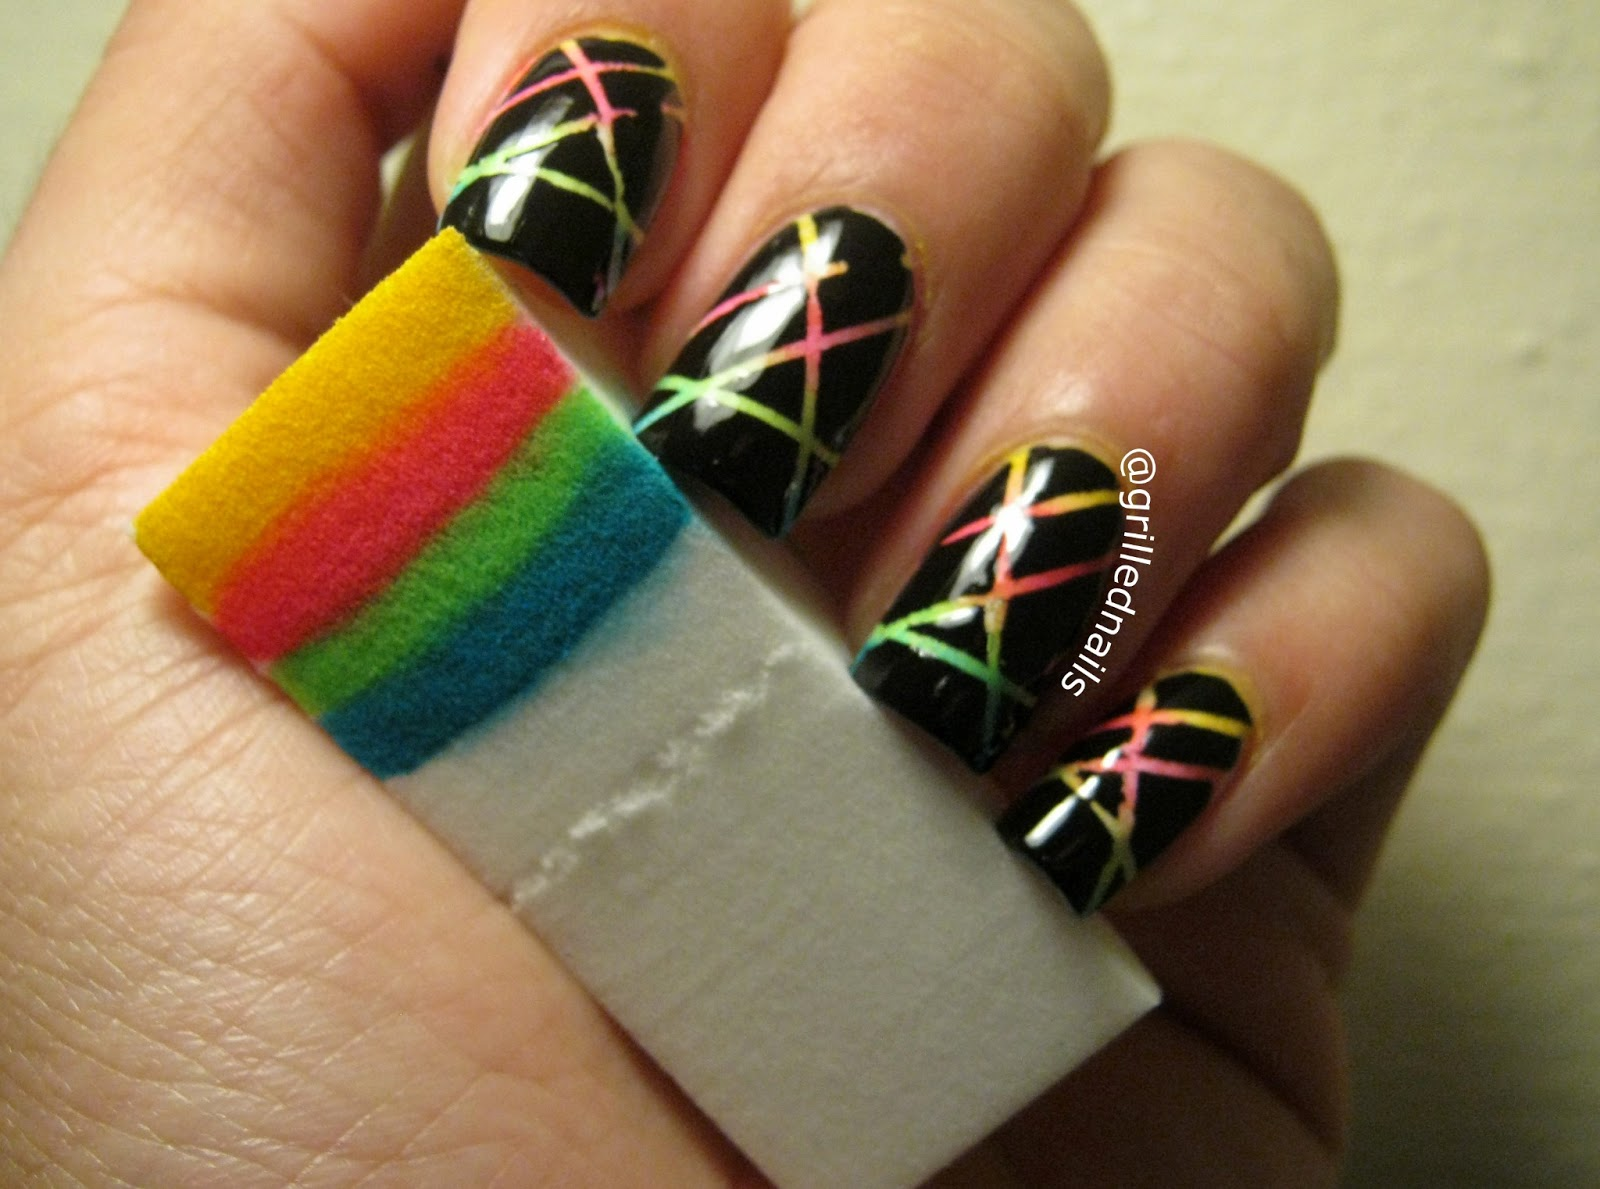 Nail Art Designs With Tape | Nail Designs, Hair Styles ...